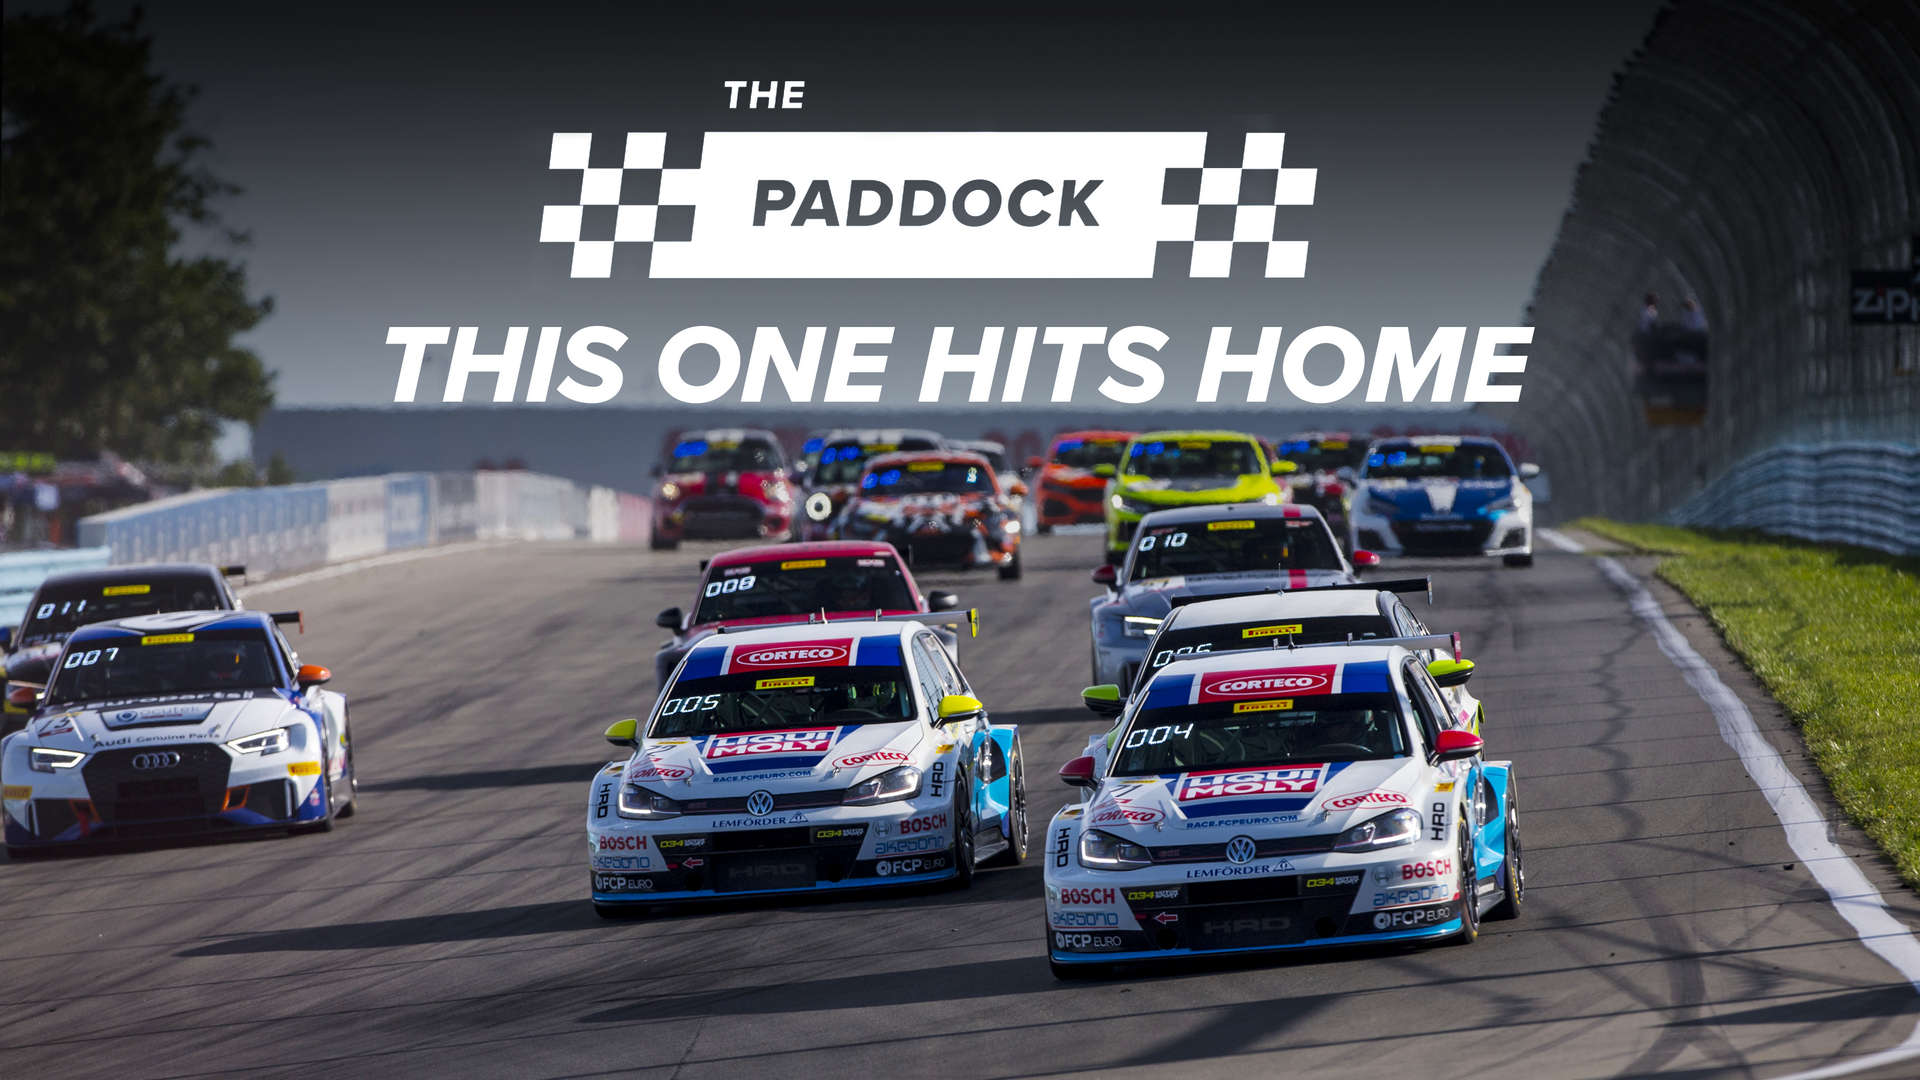 This One Hits Home - The Paddock Season Two, Episode Seven